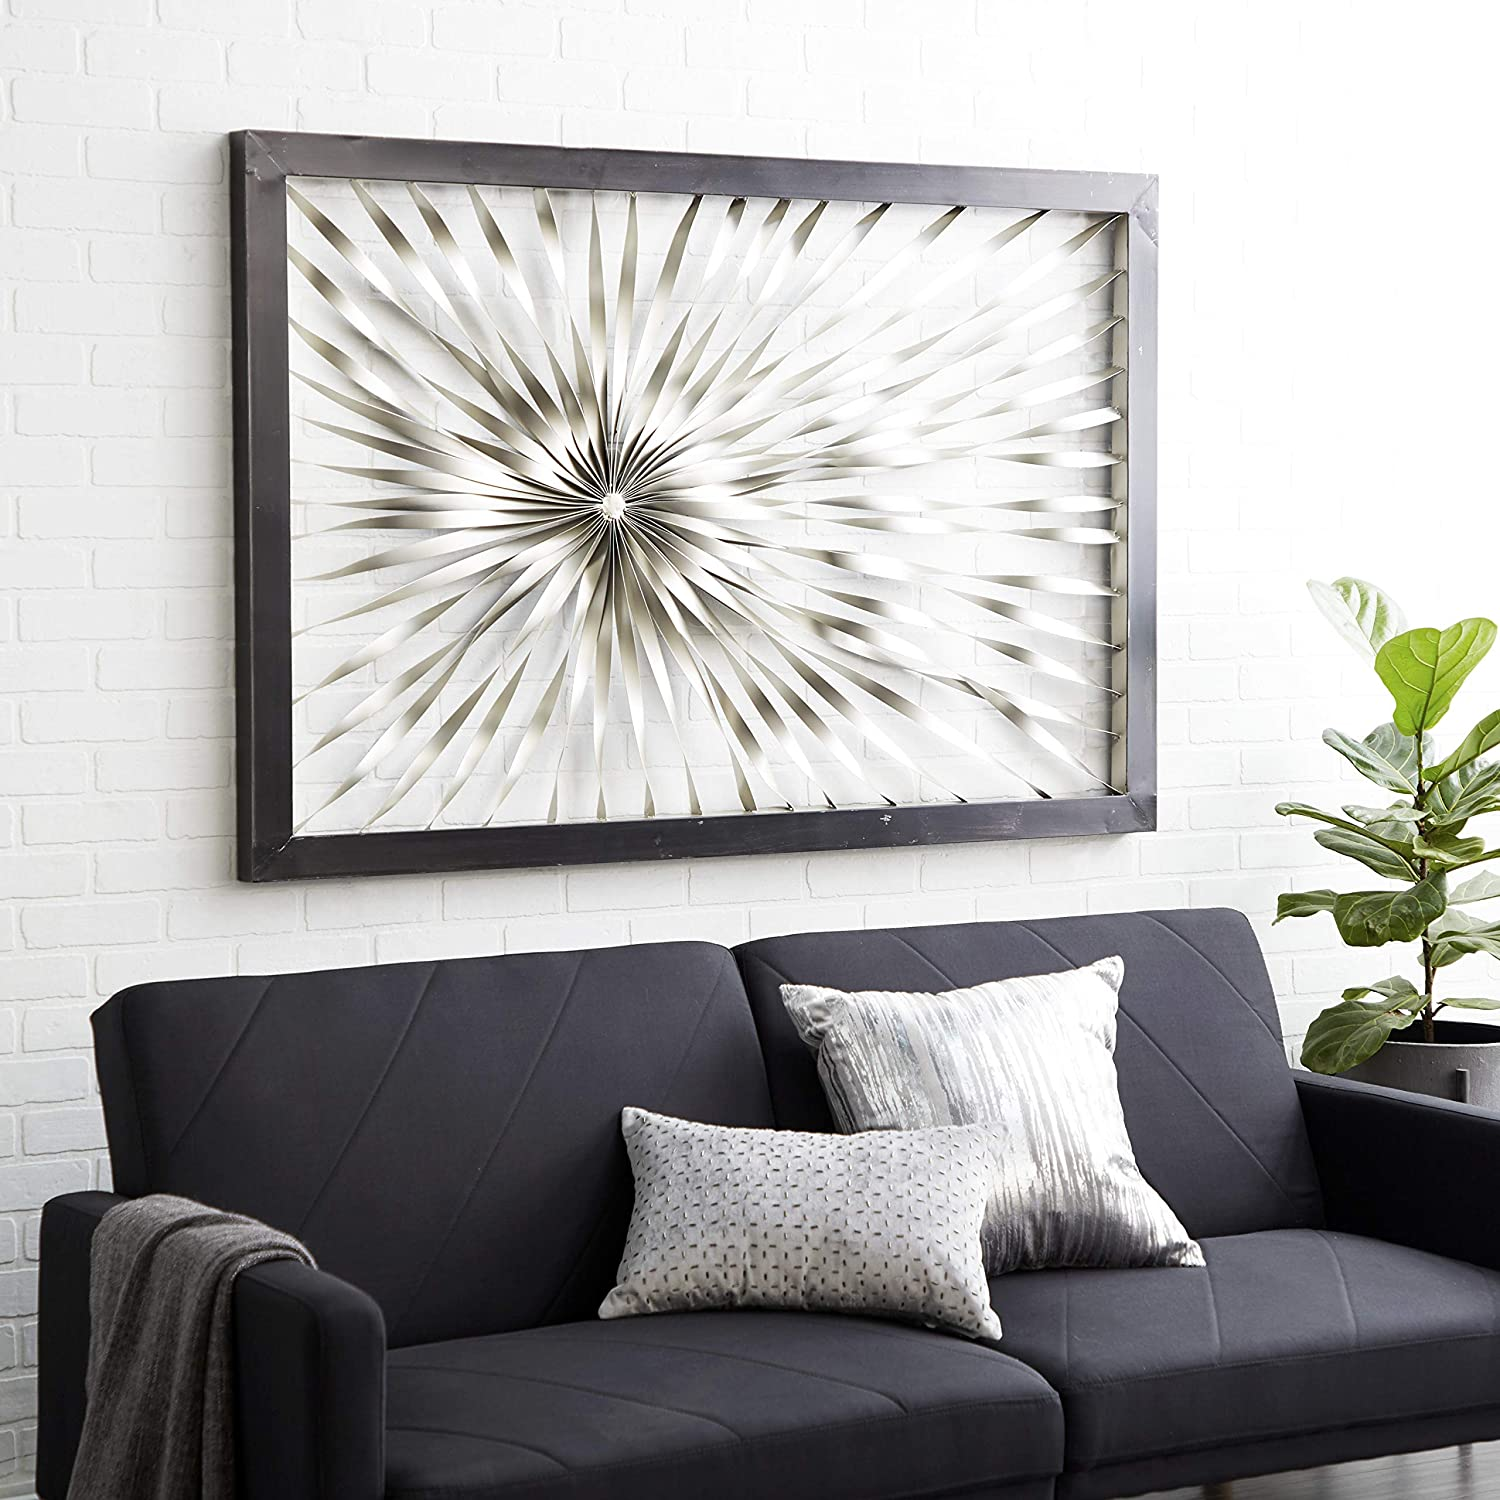 Deco 79 Metal Wall Decor, 60 by 40-Inch